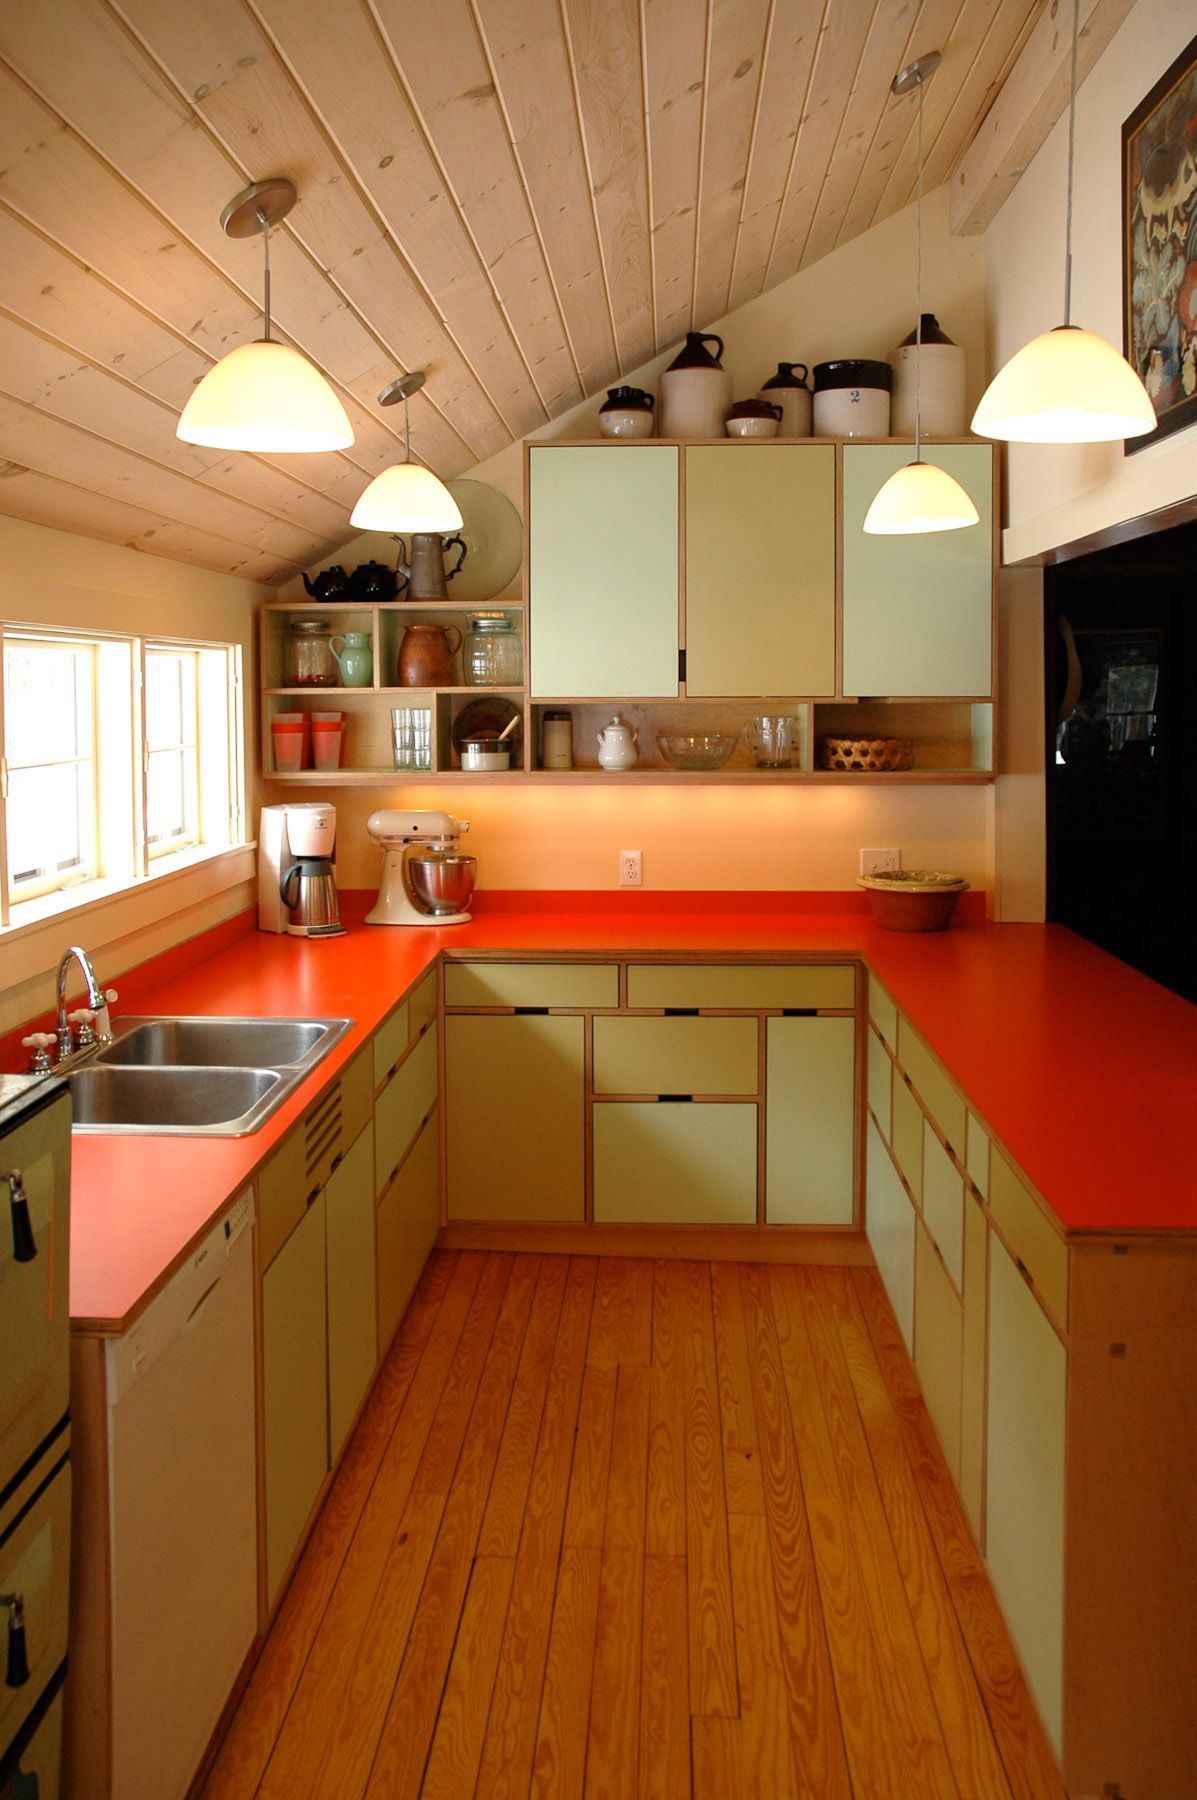 not sure i subscribe to the color choices but i like the boldness and the plywood plywood kitchenplywood cabinetsplywood - Plywood Kitchen Decor